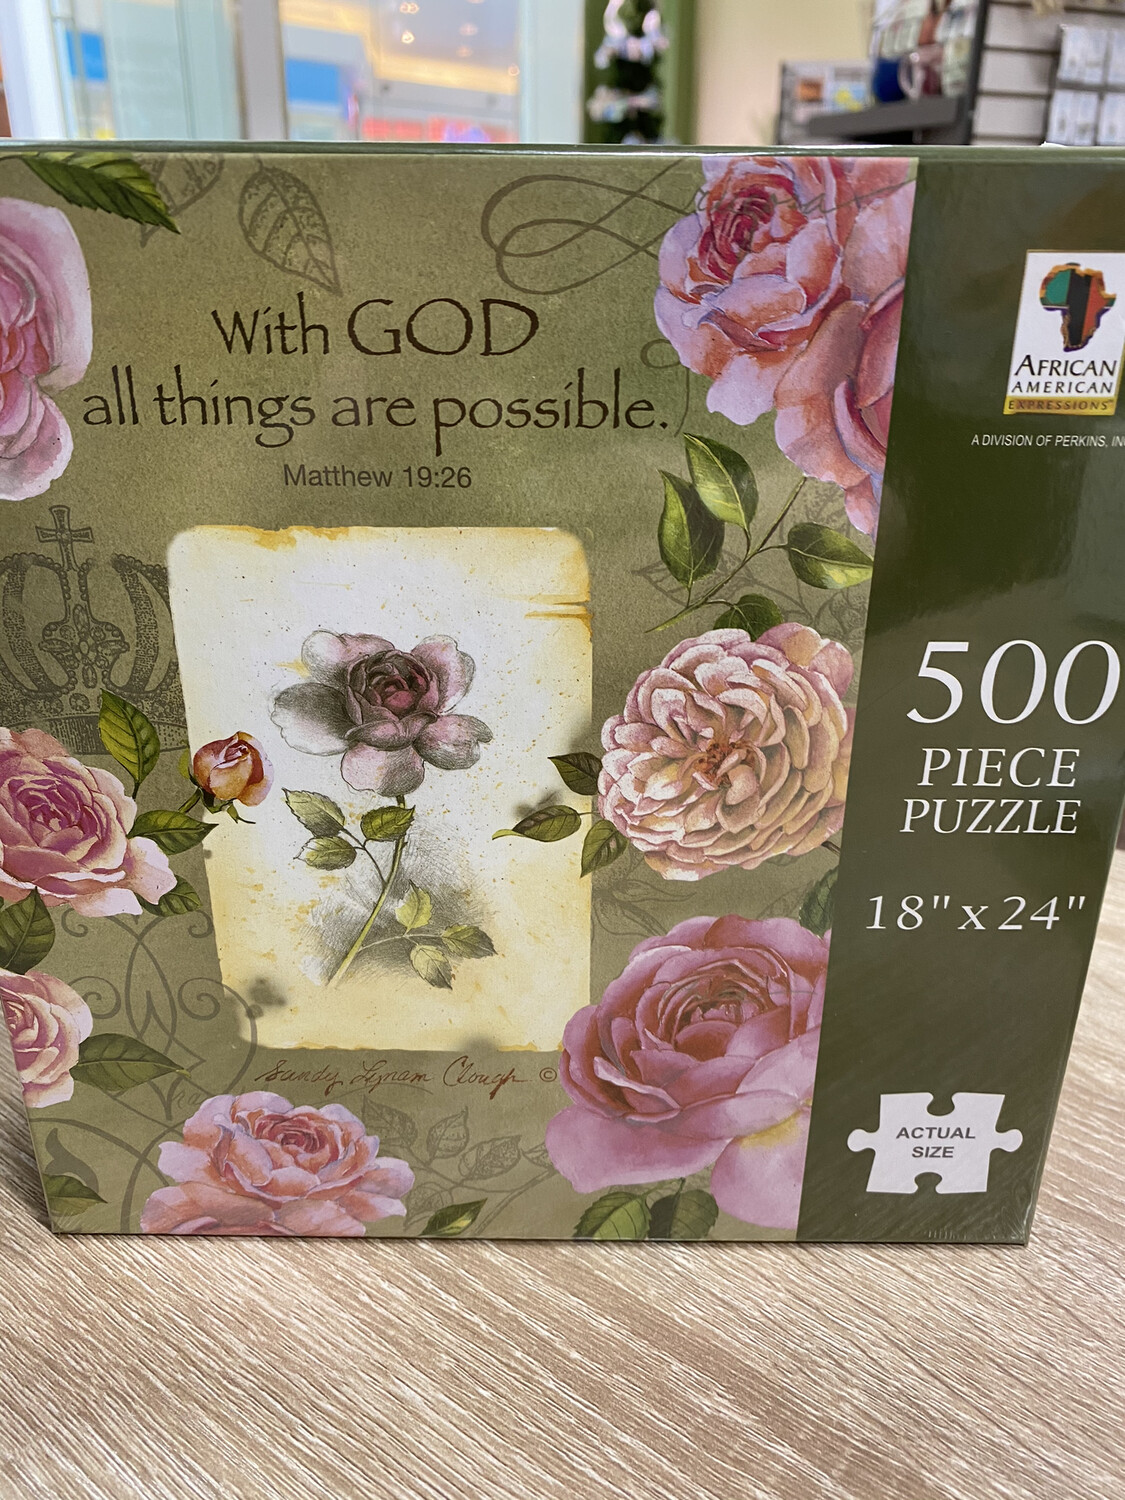 All Things Are Possible, 500 Piece Puzzle